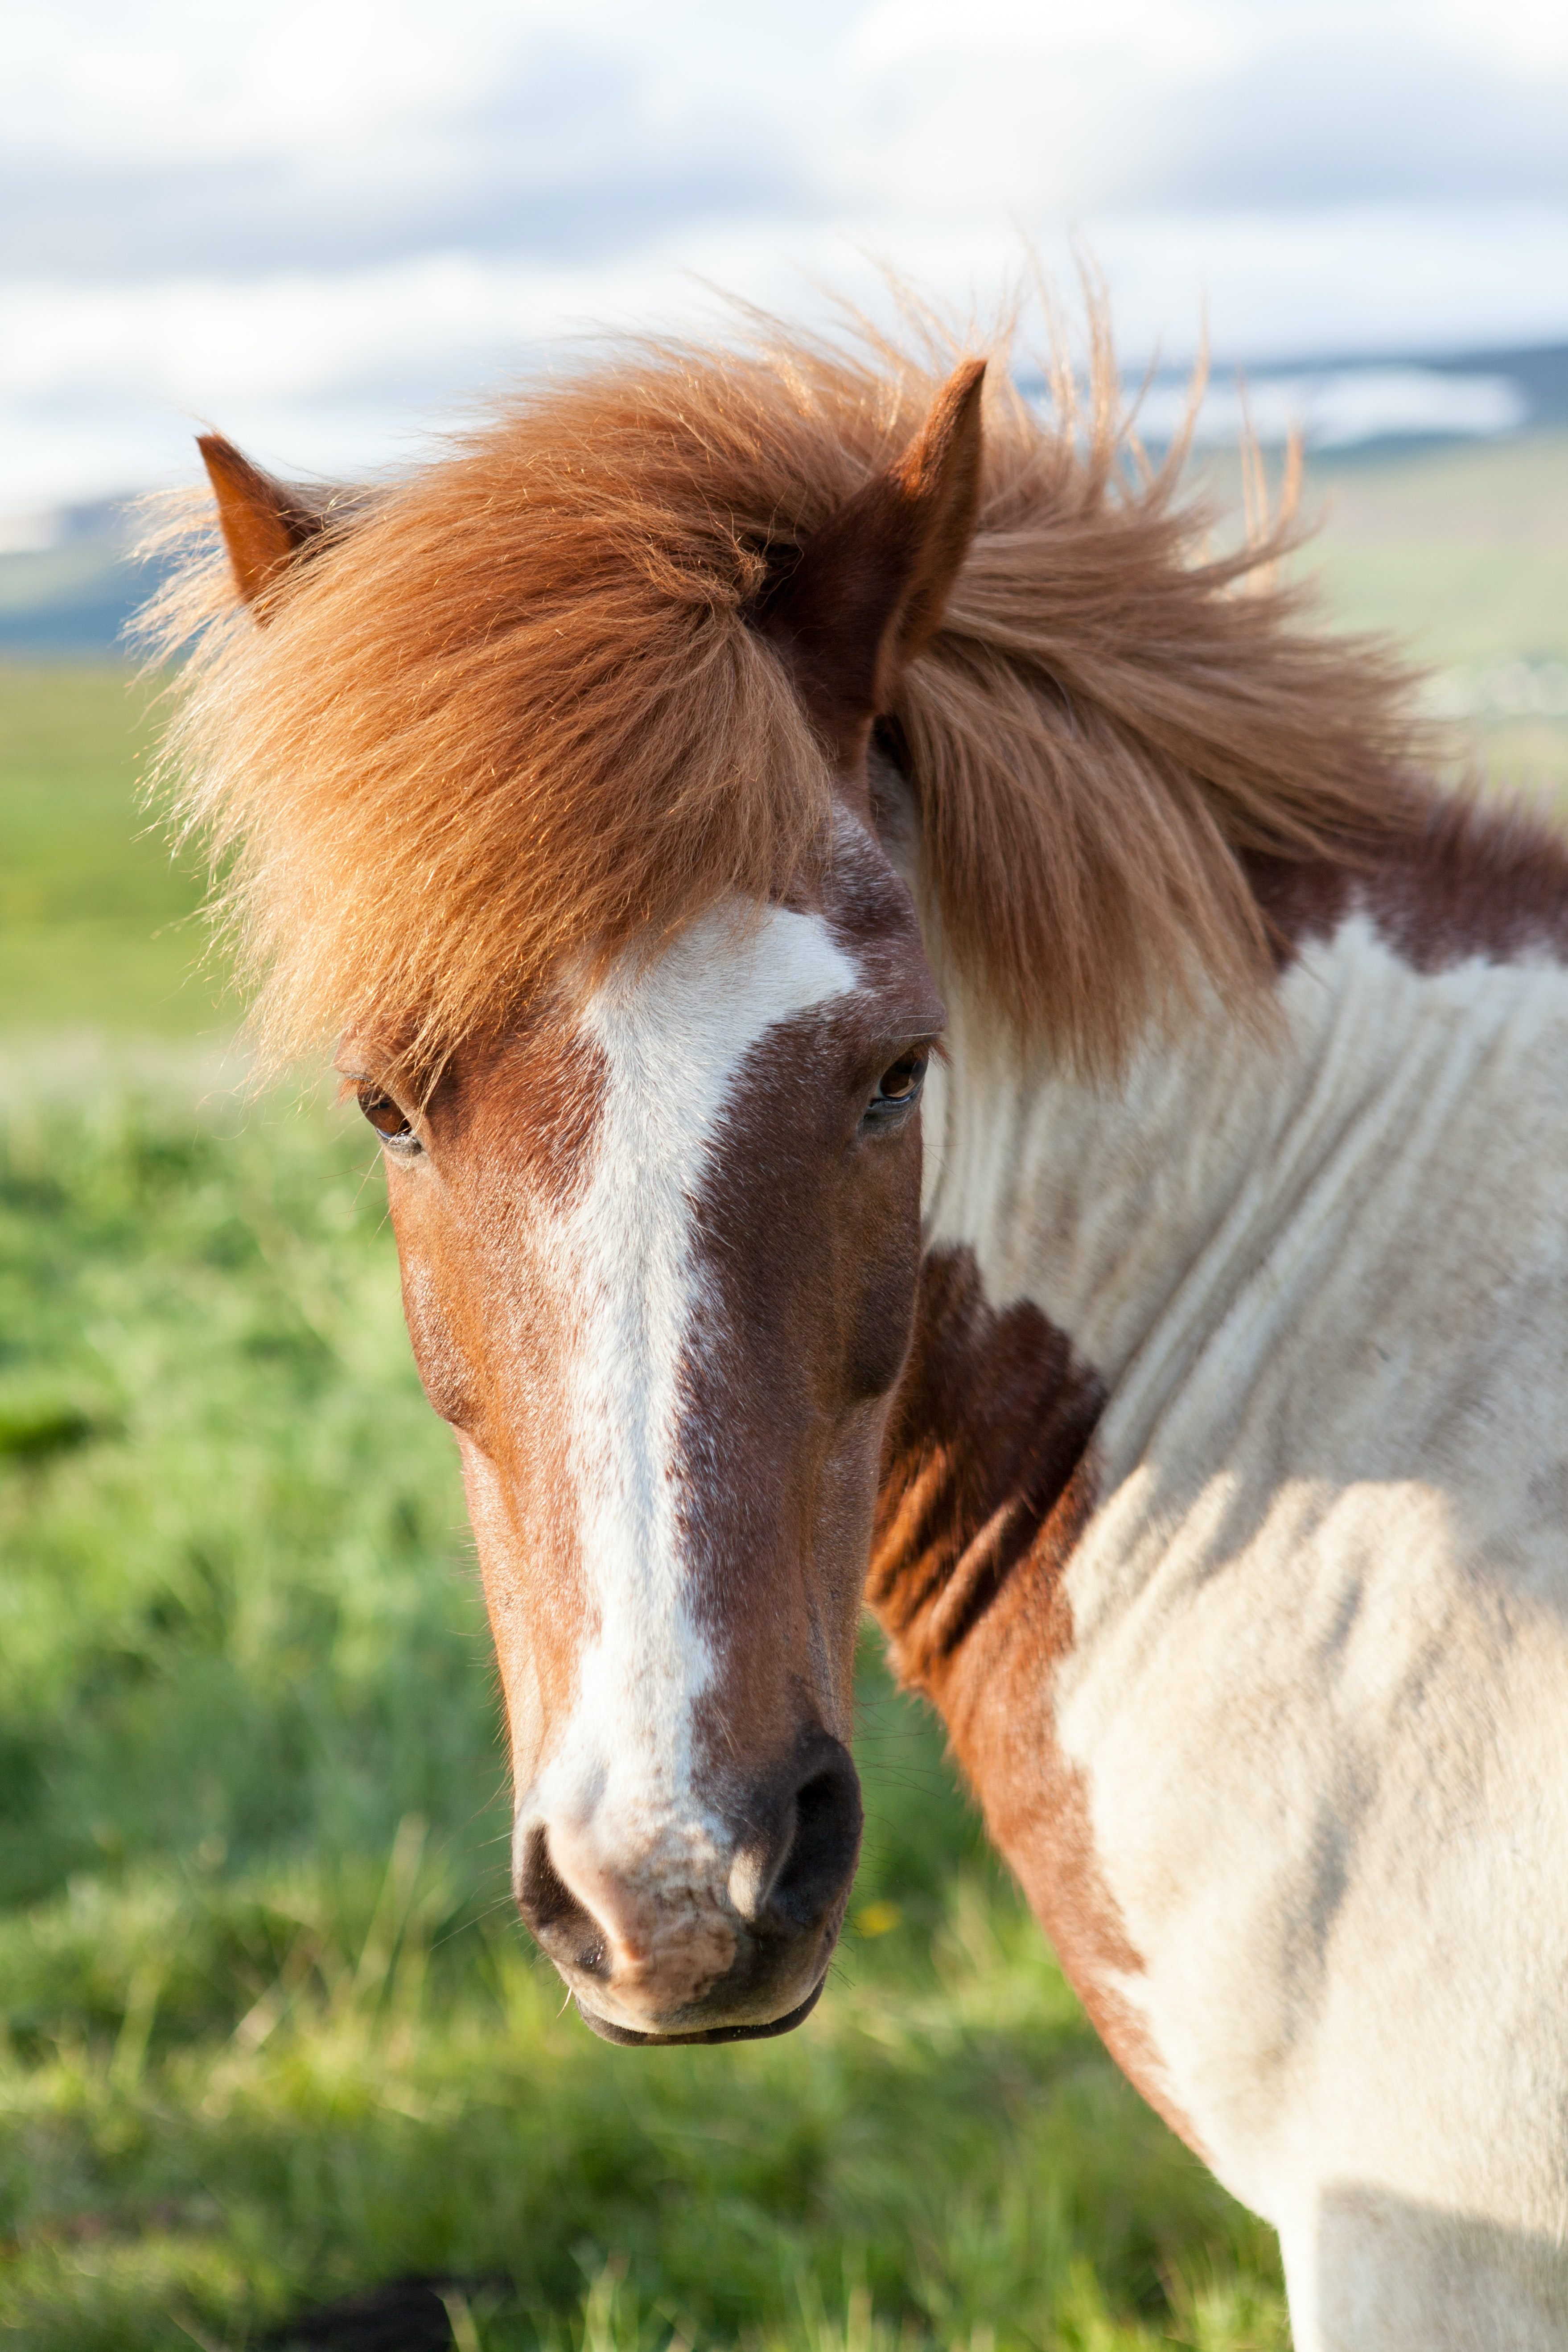 A skewbald horse with a thick mane turns its head to the side